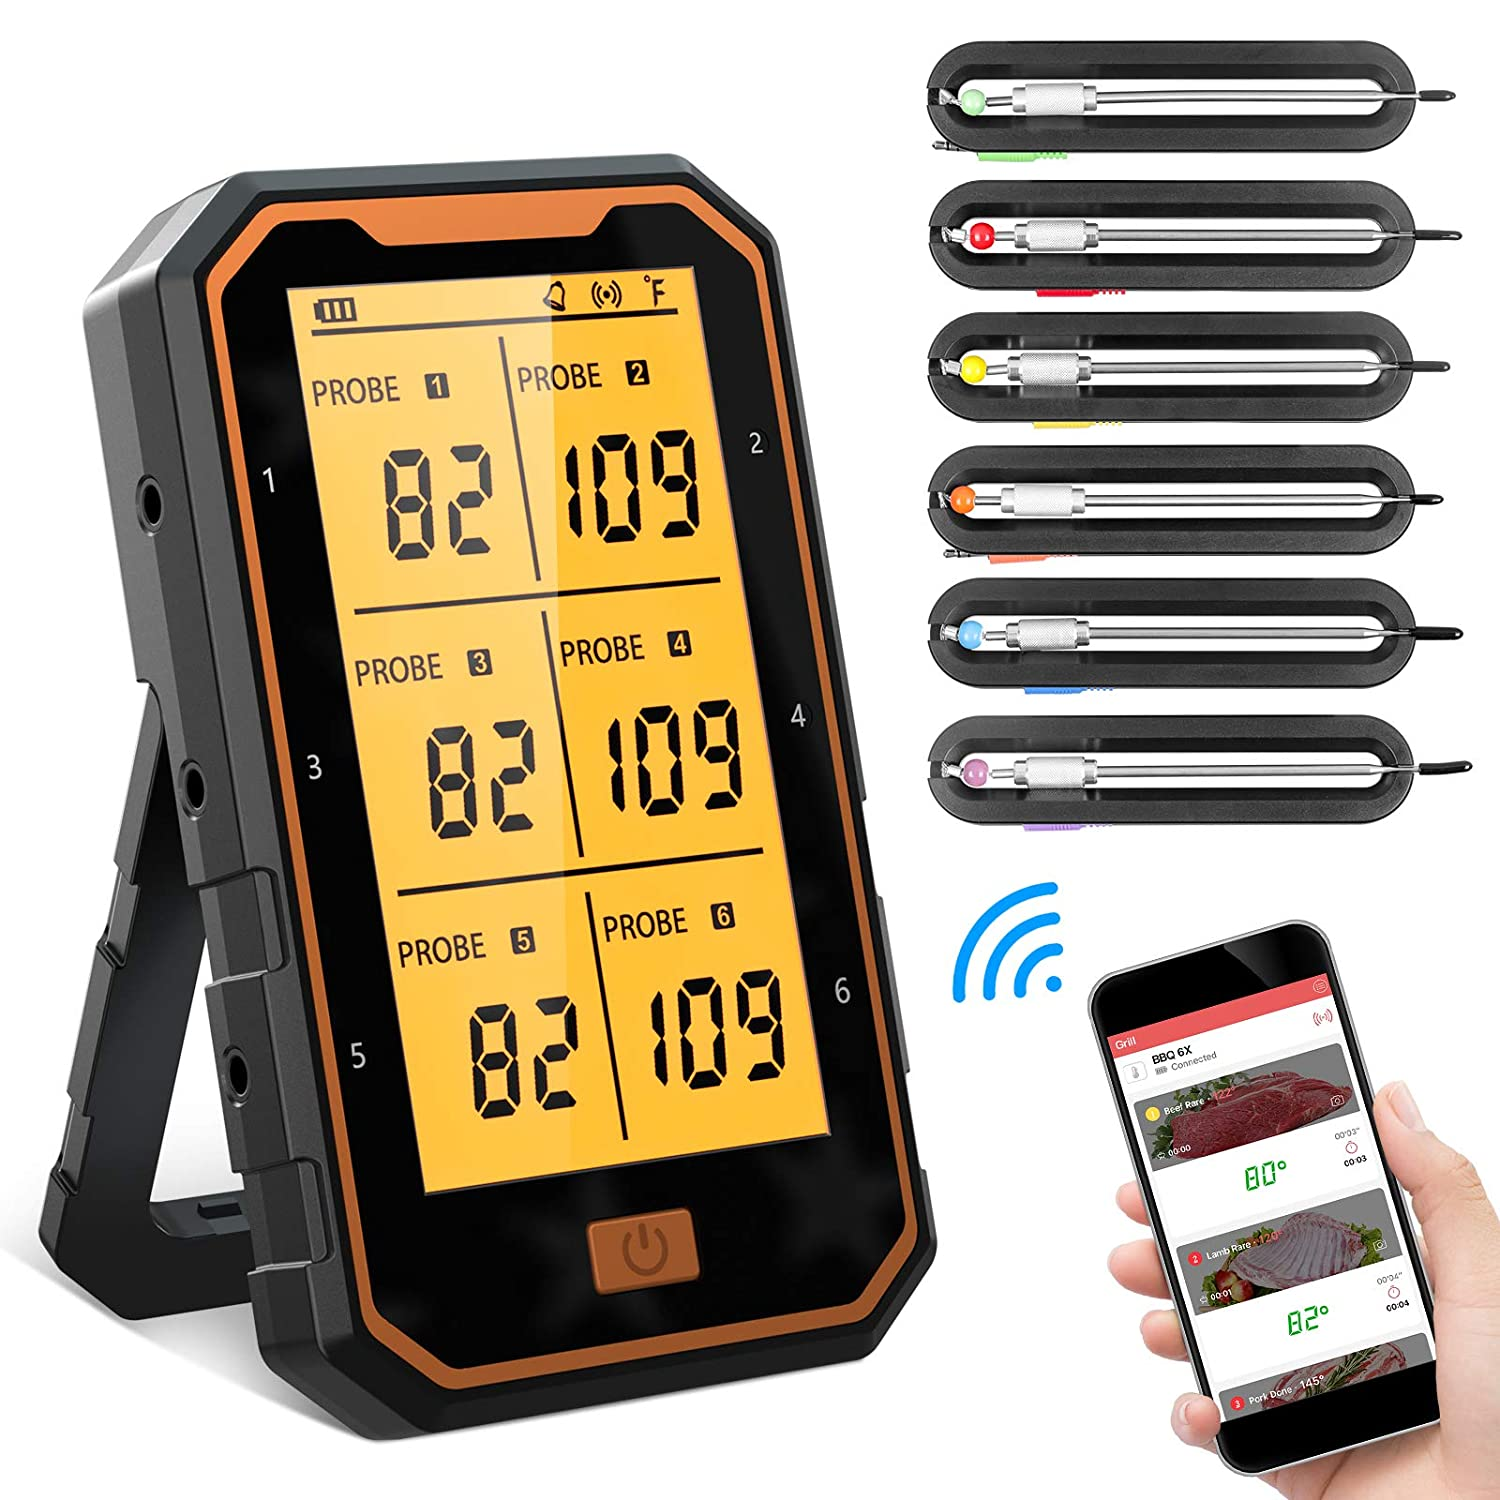 BOYON Meat Max 48% OFF Thermometers for Cooking Rechargeable B and Grilling Sale special price